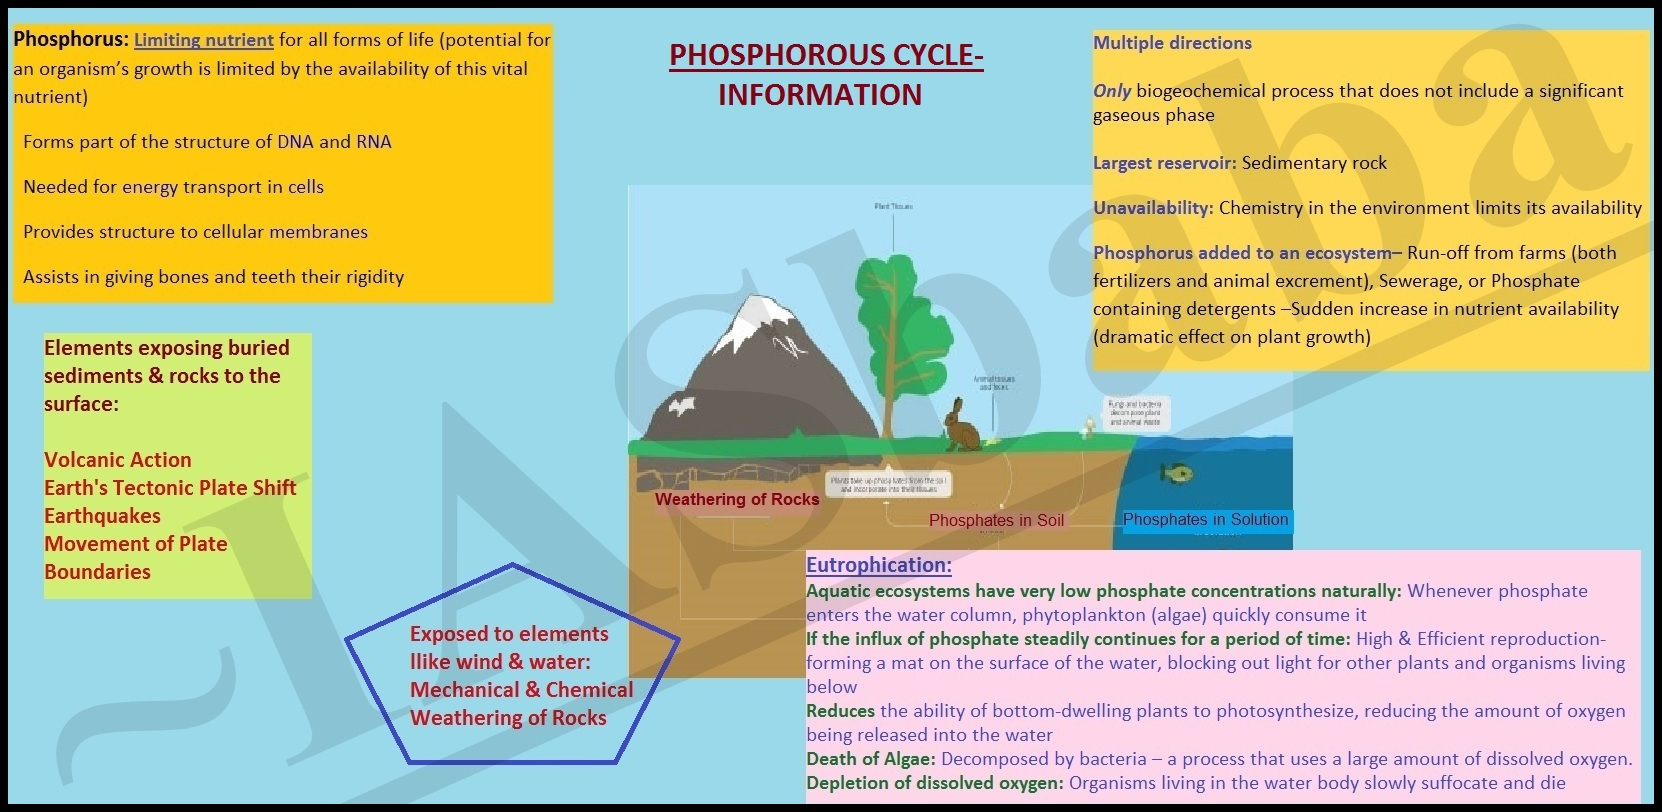 Phosphorous Cycle Info